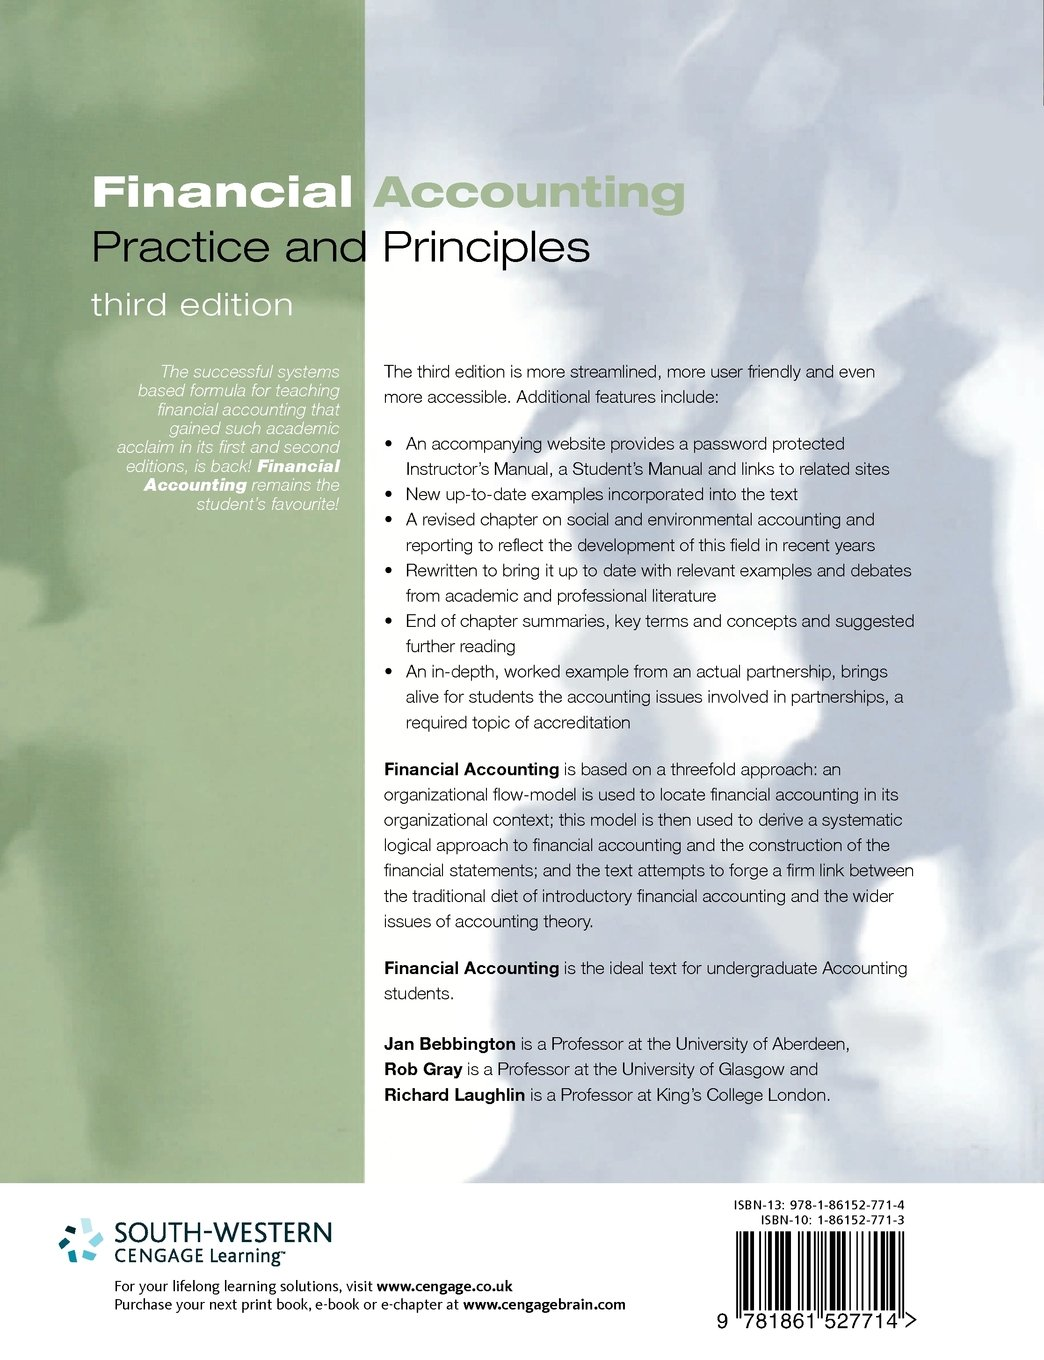 Financial Accounting: Practice and Principles: Jan Bebbington, Rob Gray,  Richard Laughlin: 9781861527714: Amazon.com: Books